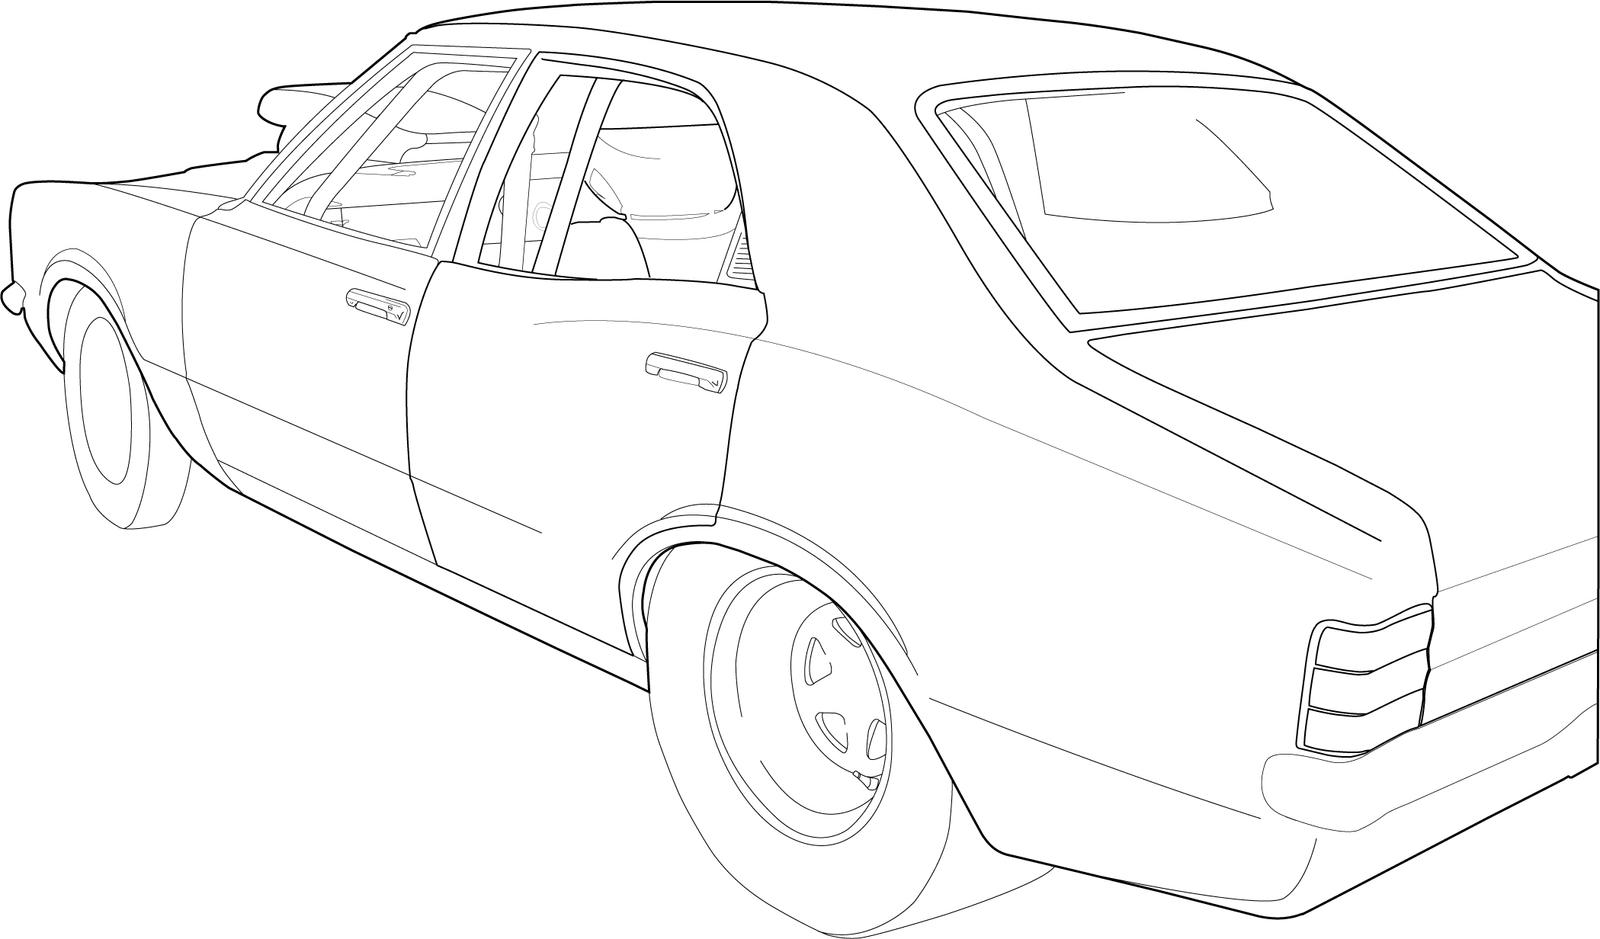 holden torana sketch coloring page